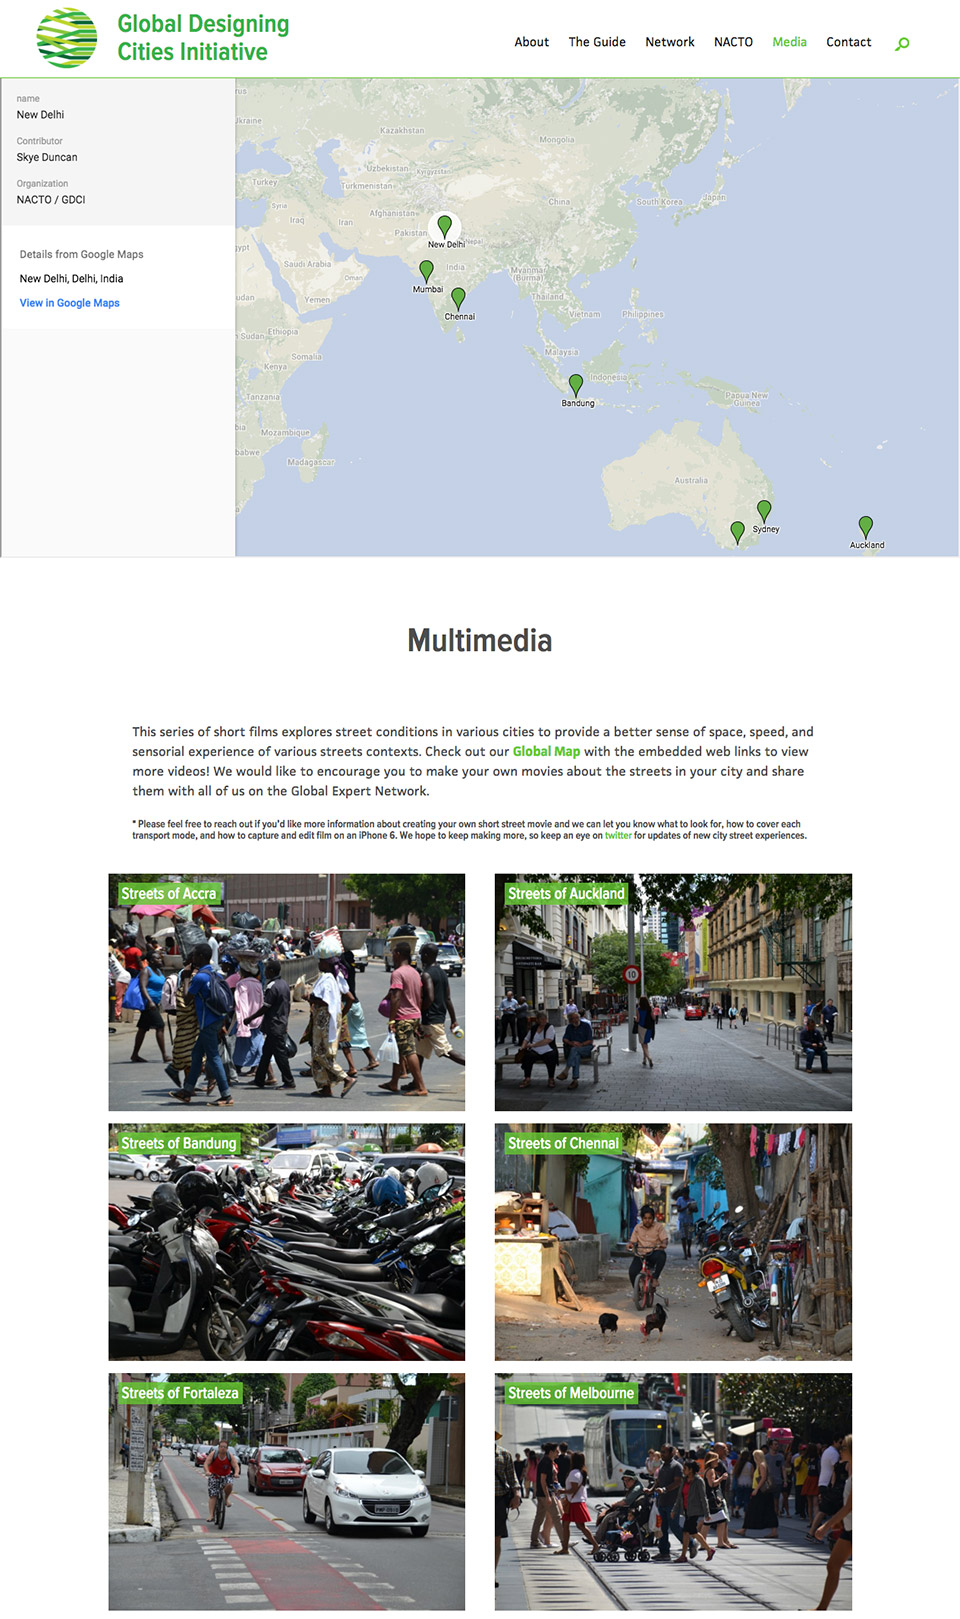 Global Designing Cities Initiative: Interactive Map & Multimedia